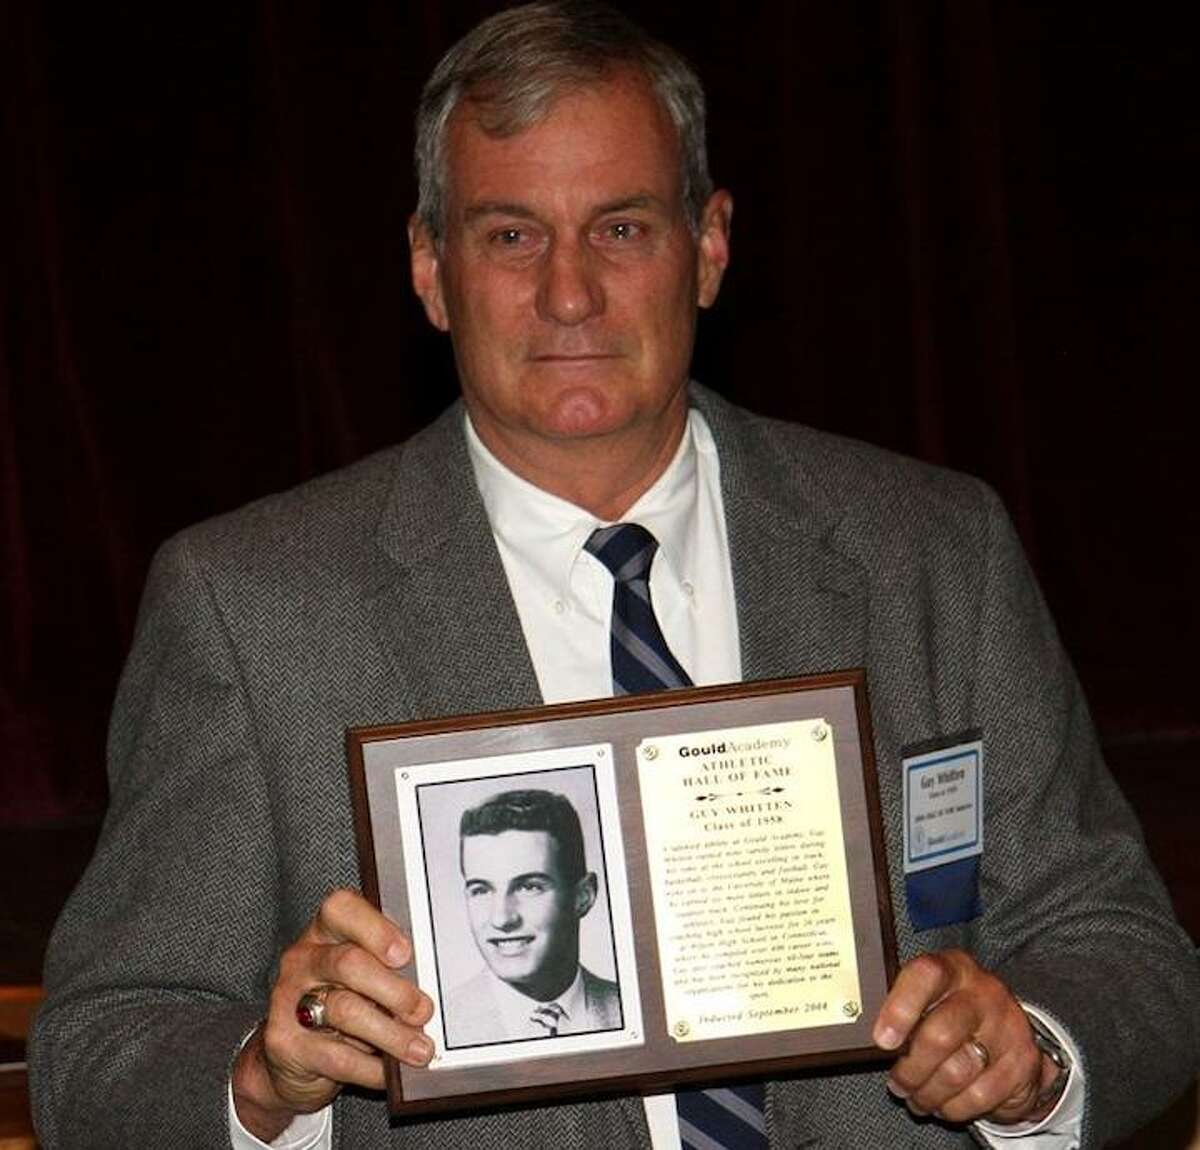 Former Wilton High boys lacrosse coach Guy Whitten is among seven inductees in the Fairfield County Sports Hall of Fame's 2019 class. Whitten is shown with a plaque he received after being enshrined in the University of Maine's Gould Academy Athletic Hall of Fame.